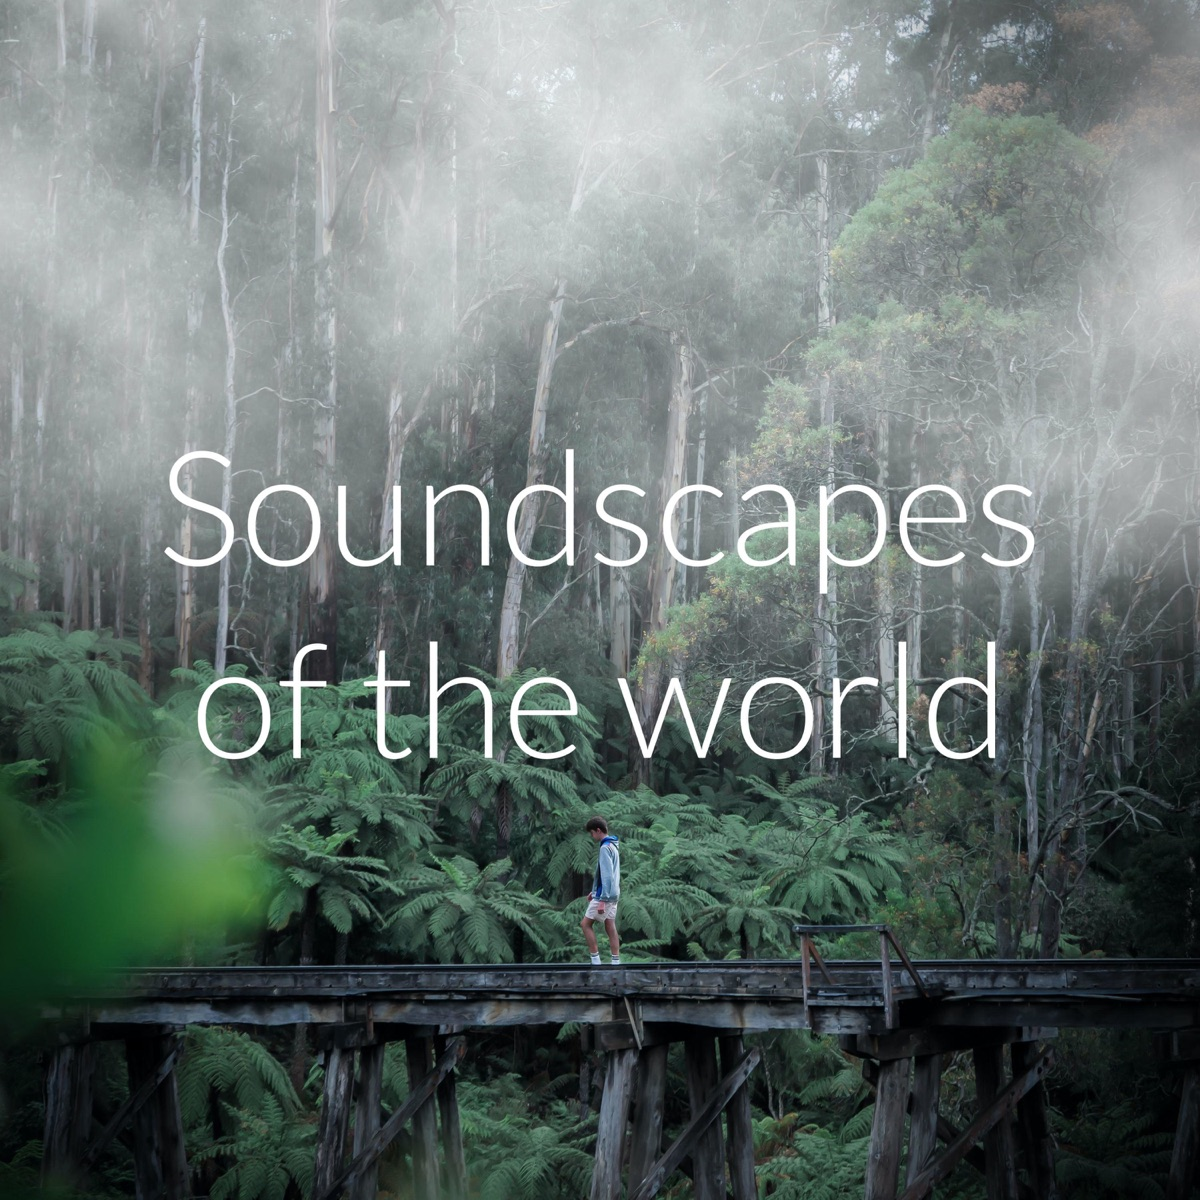 Soundscapes of the world